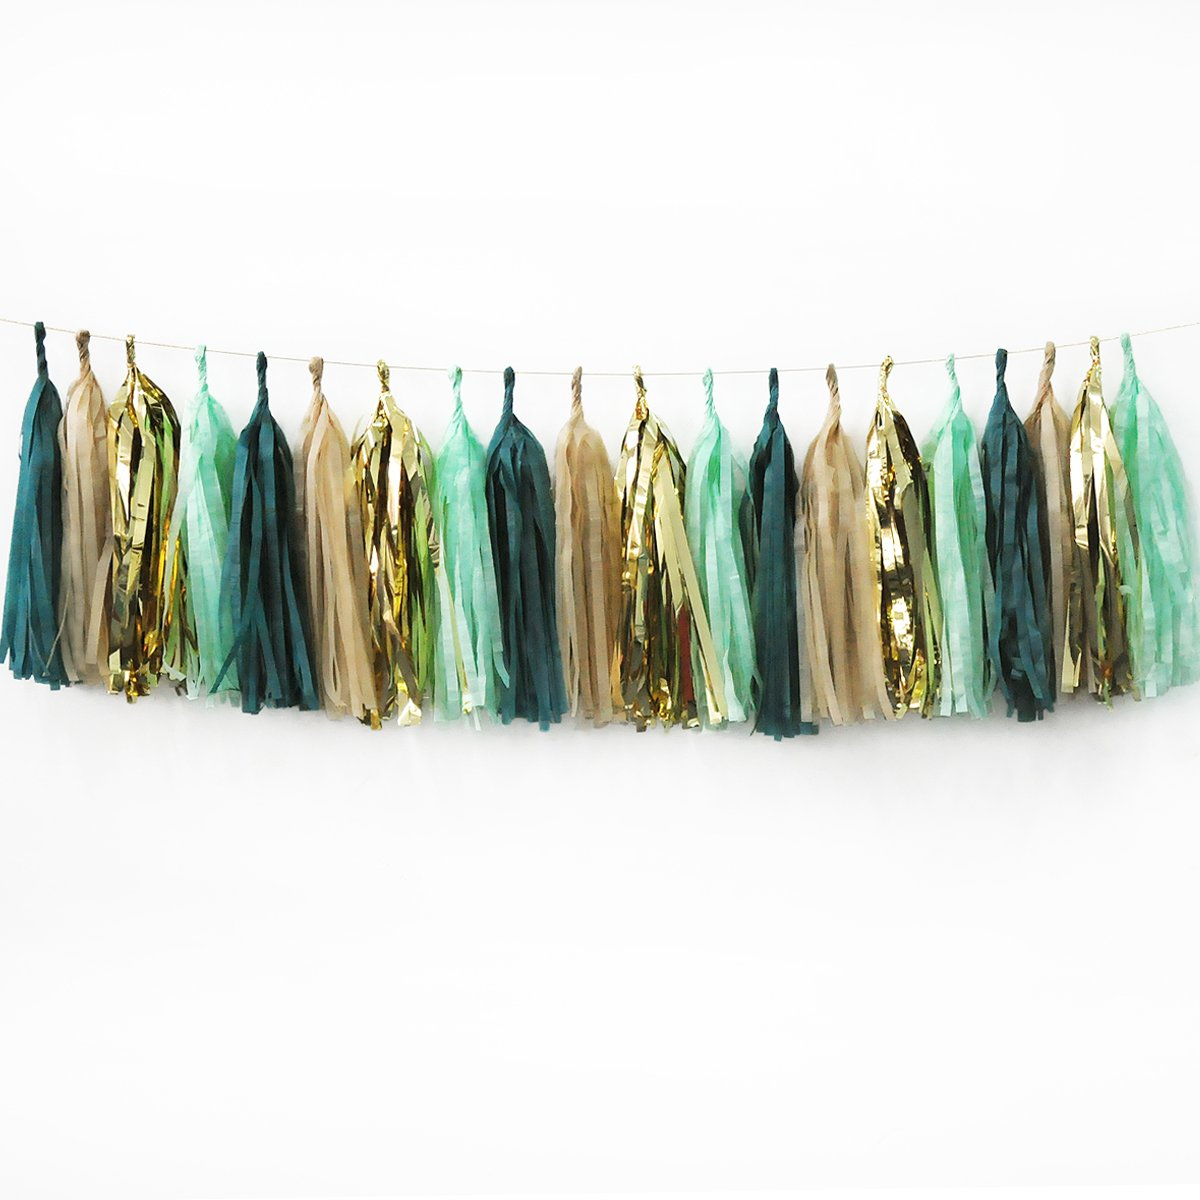 NICROLANDEE 20Pcs Party Garlands Sage Green Champagne Gold and Teal Tassel Garland For Eucalyptus Baby Shower Teal Wedding Decor Bridal Shower High Chair Banner Birthday Gender Neutral Decorations